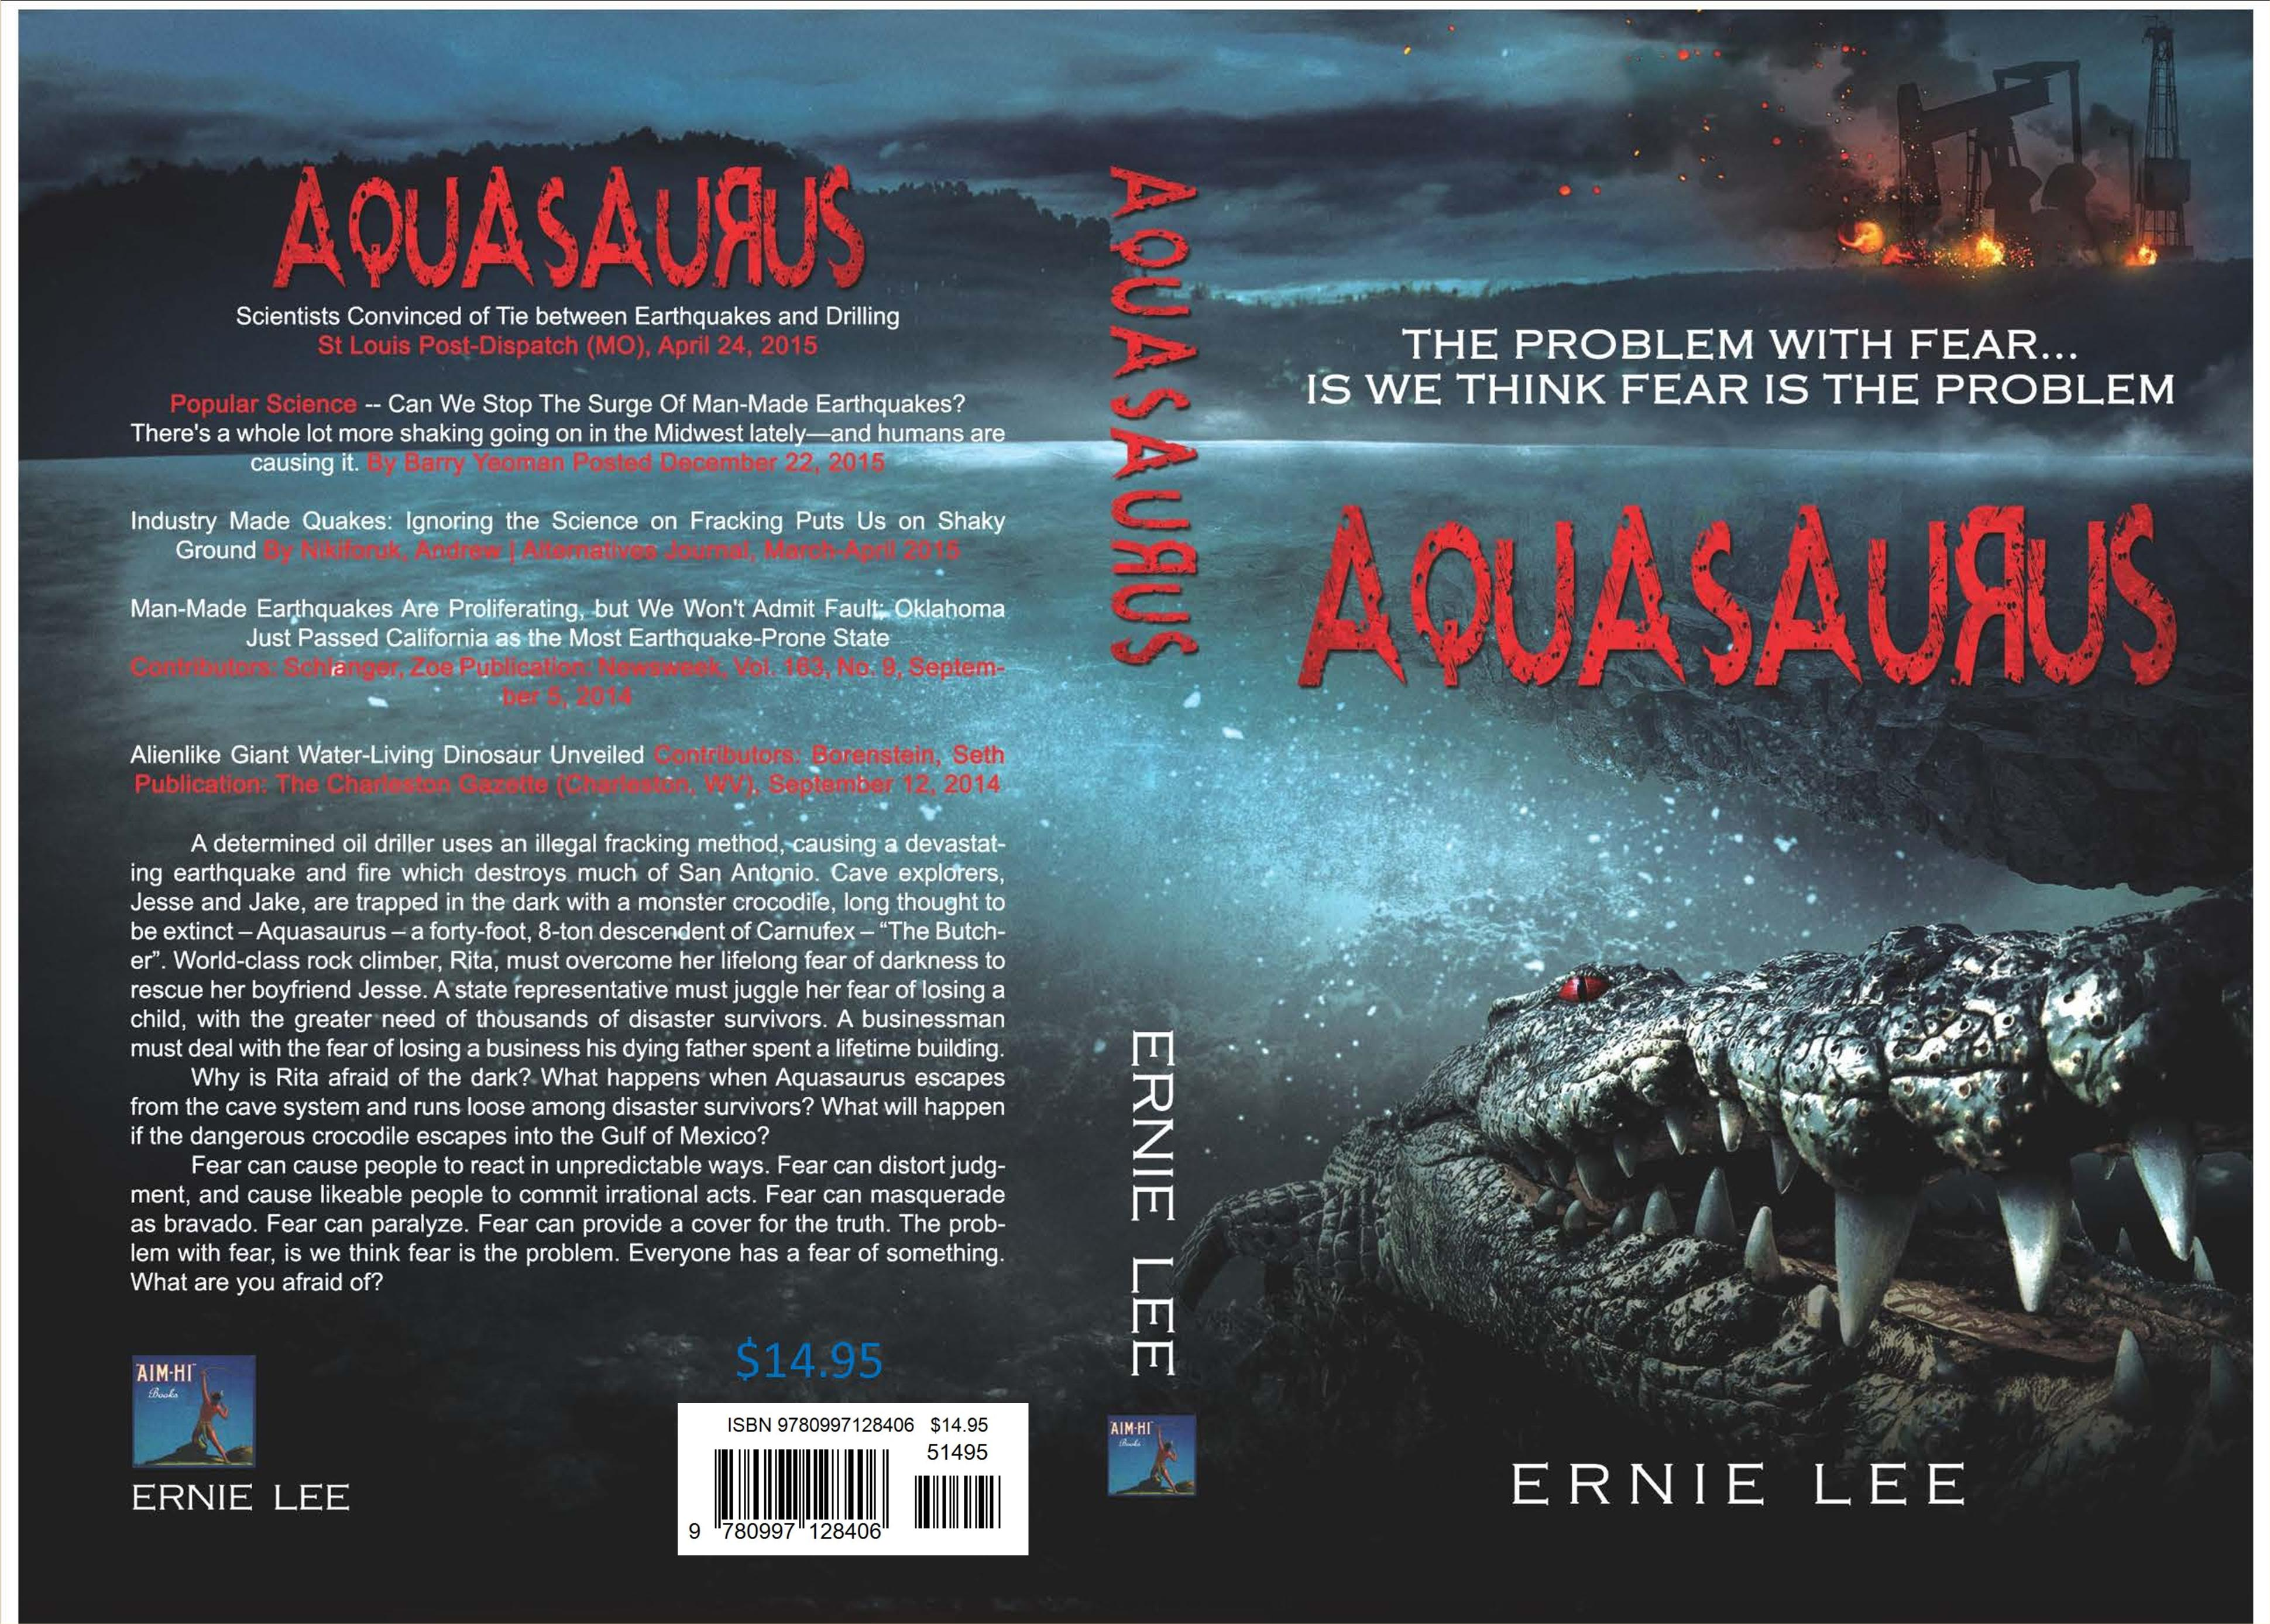 AQUASAURUS cover image